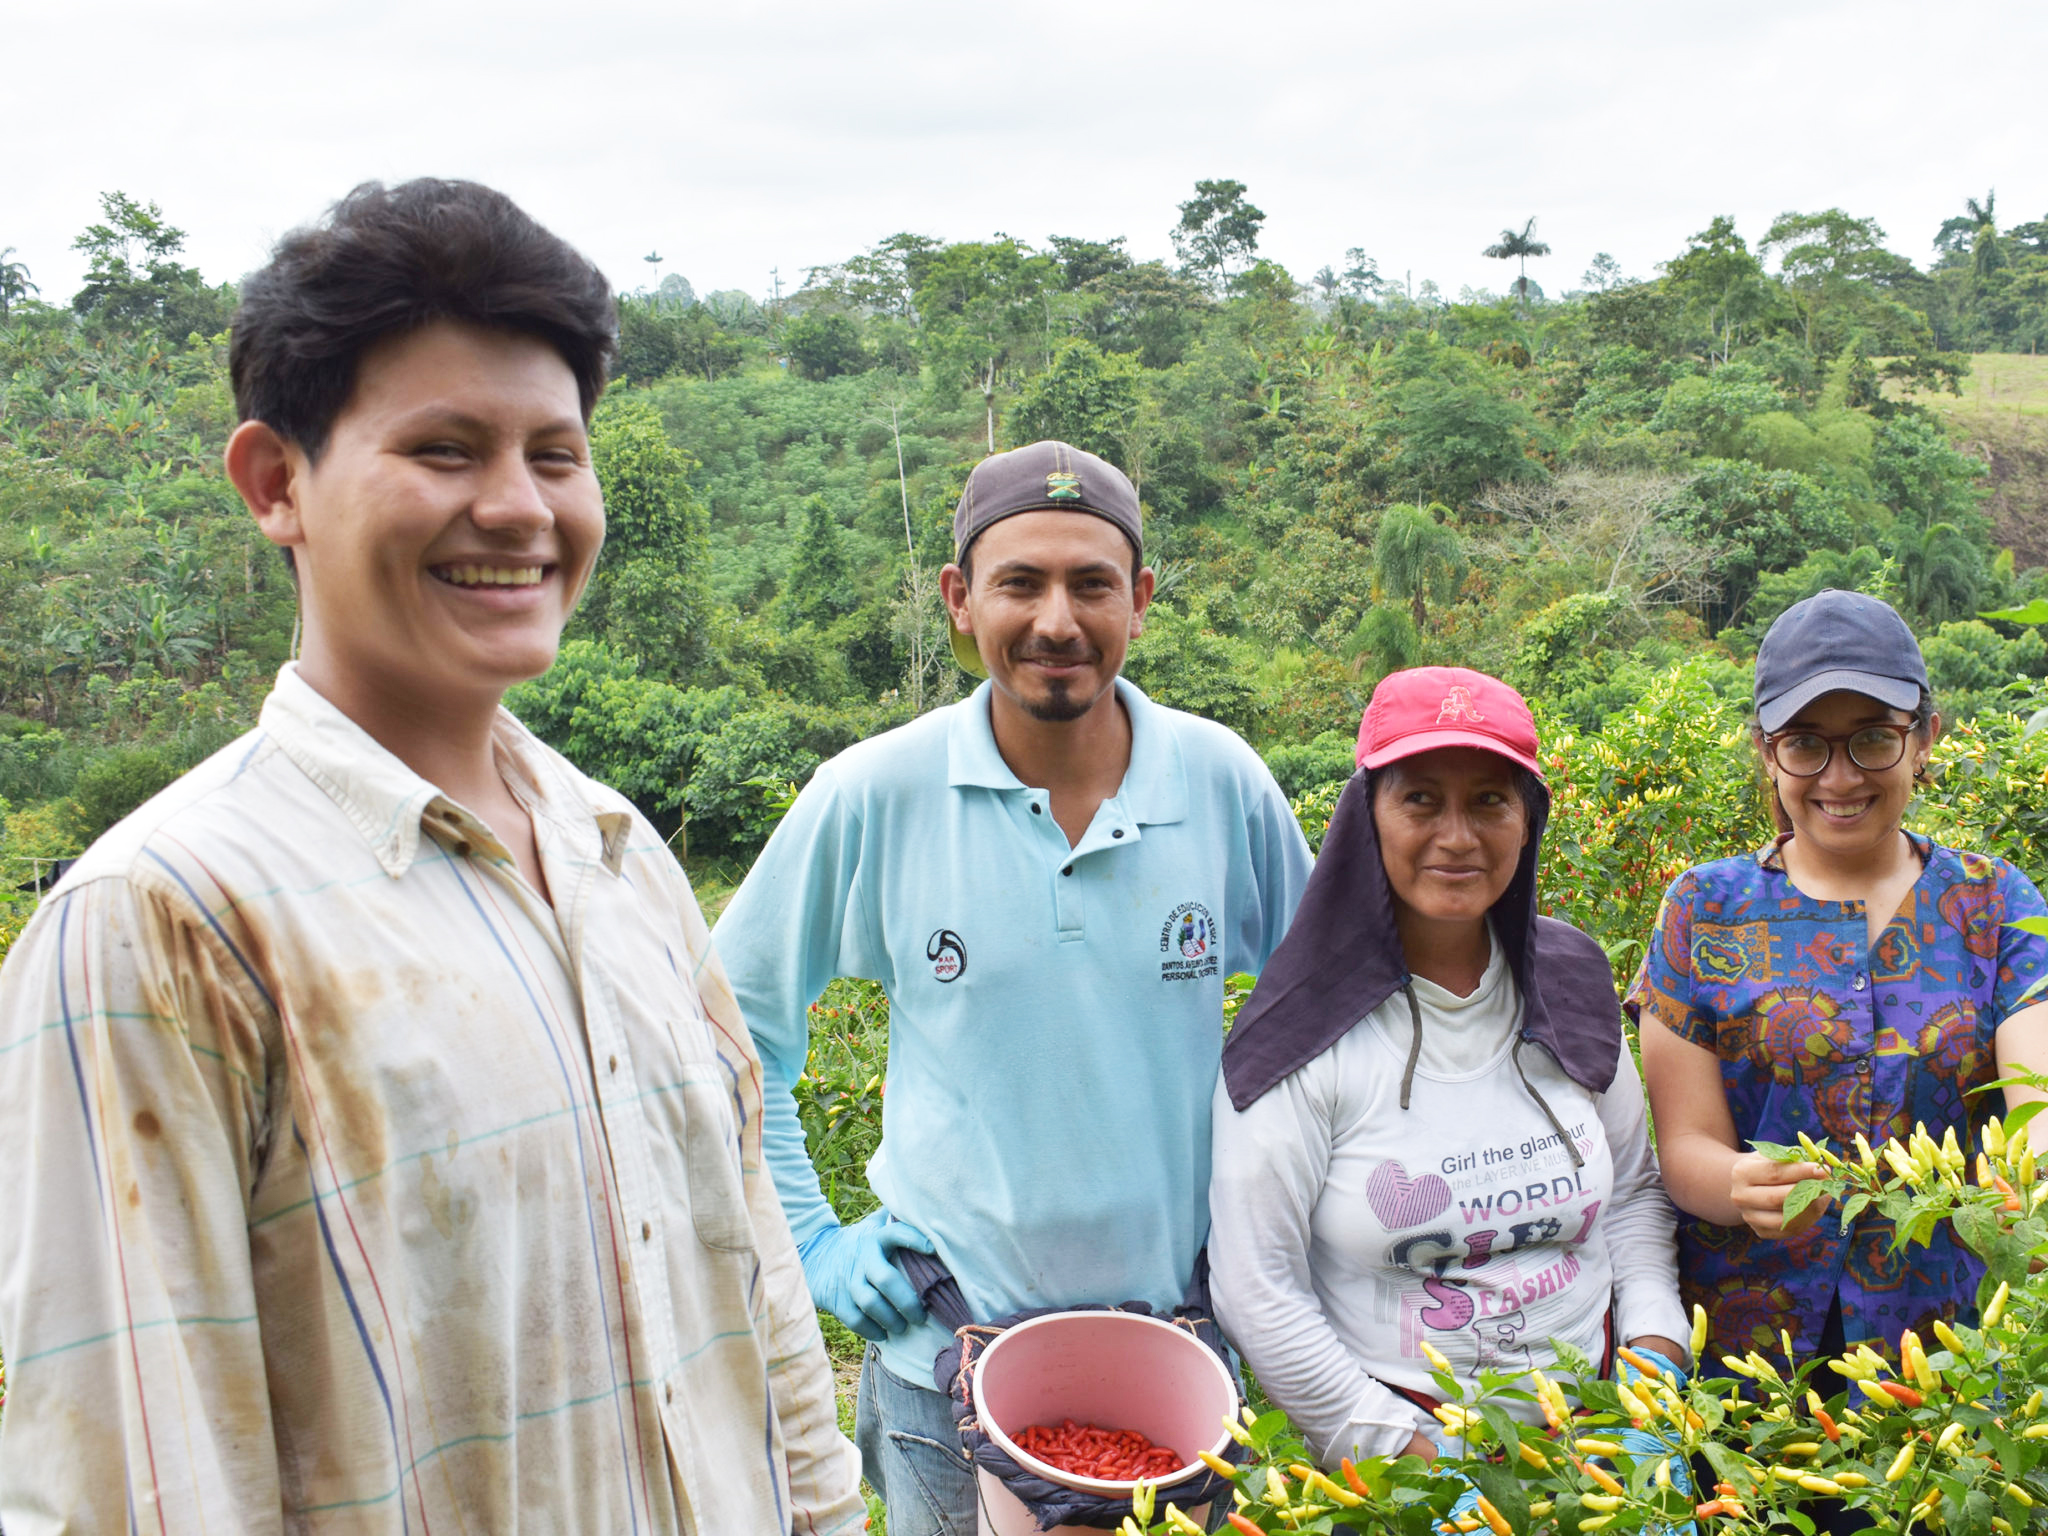 Smallholder farmers and impact investing agronomist smiling in green fields in Latin America